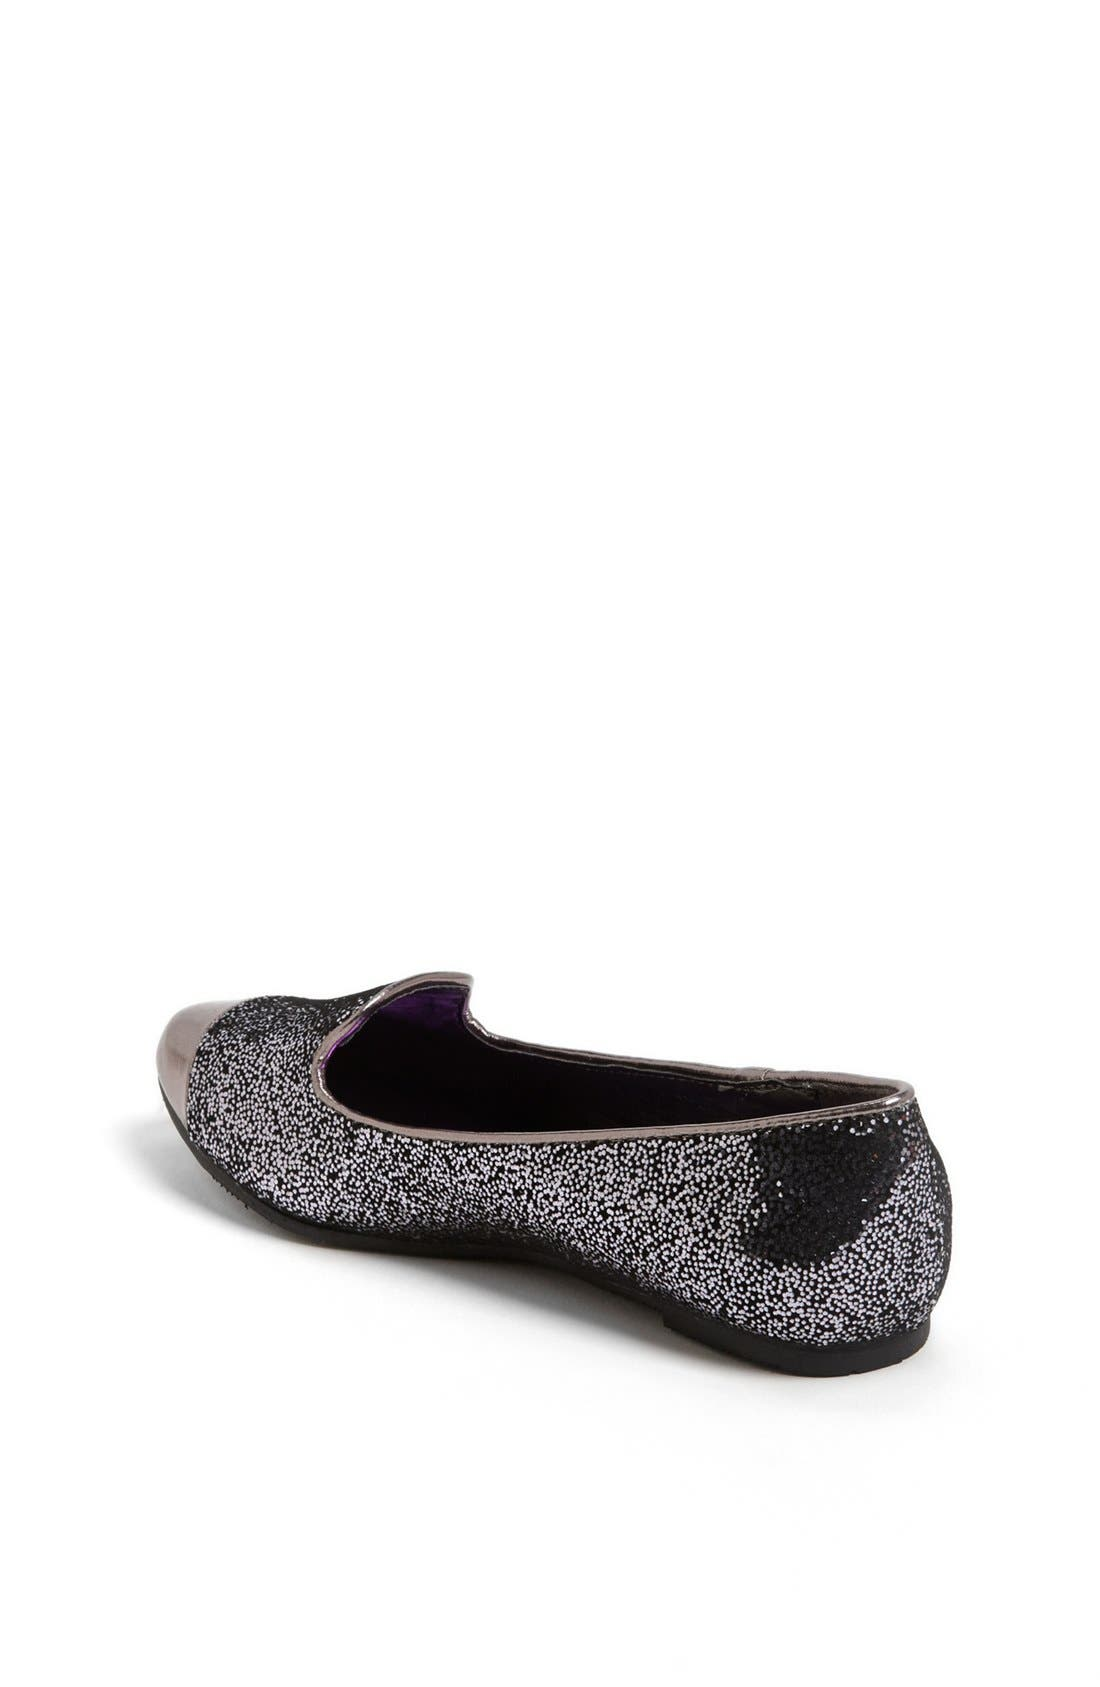 Alternate Image 2  - kensie girl Glitter Flat (Toddler, Little Kid & Big Kid)